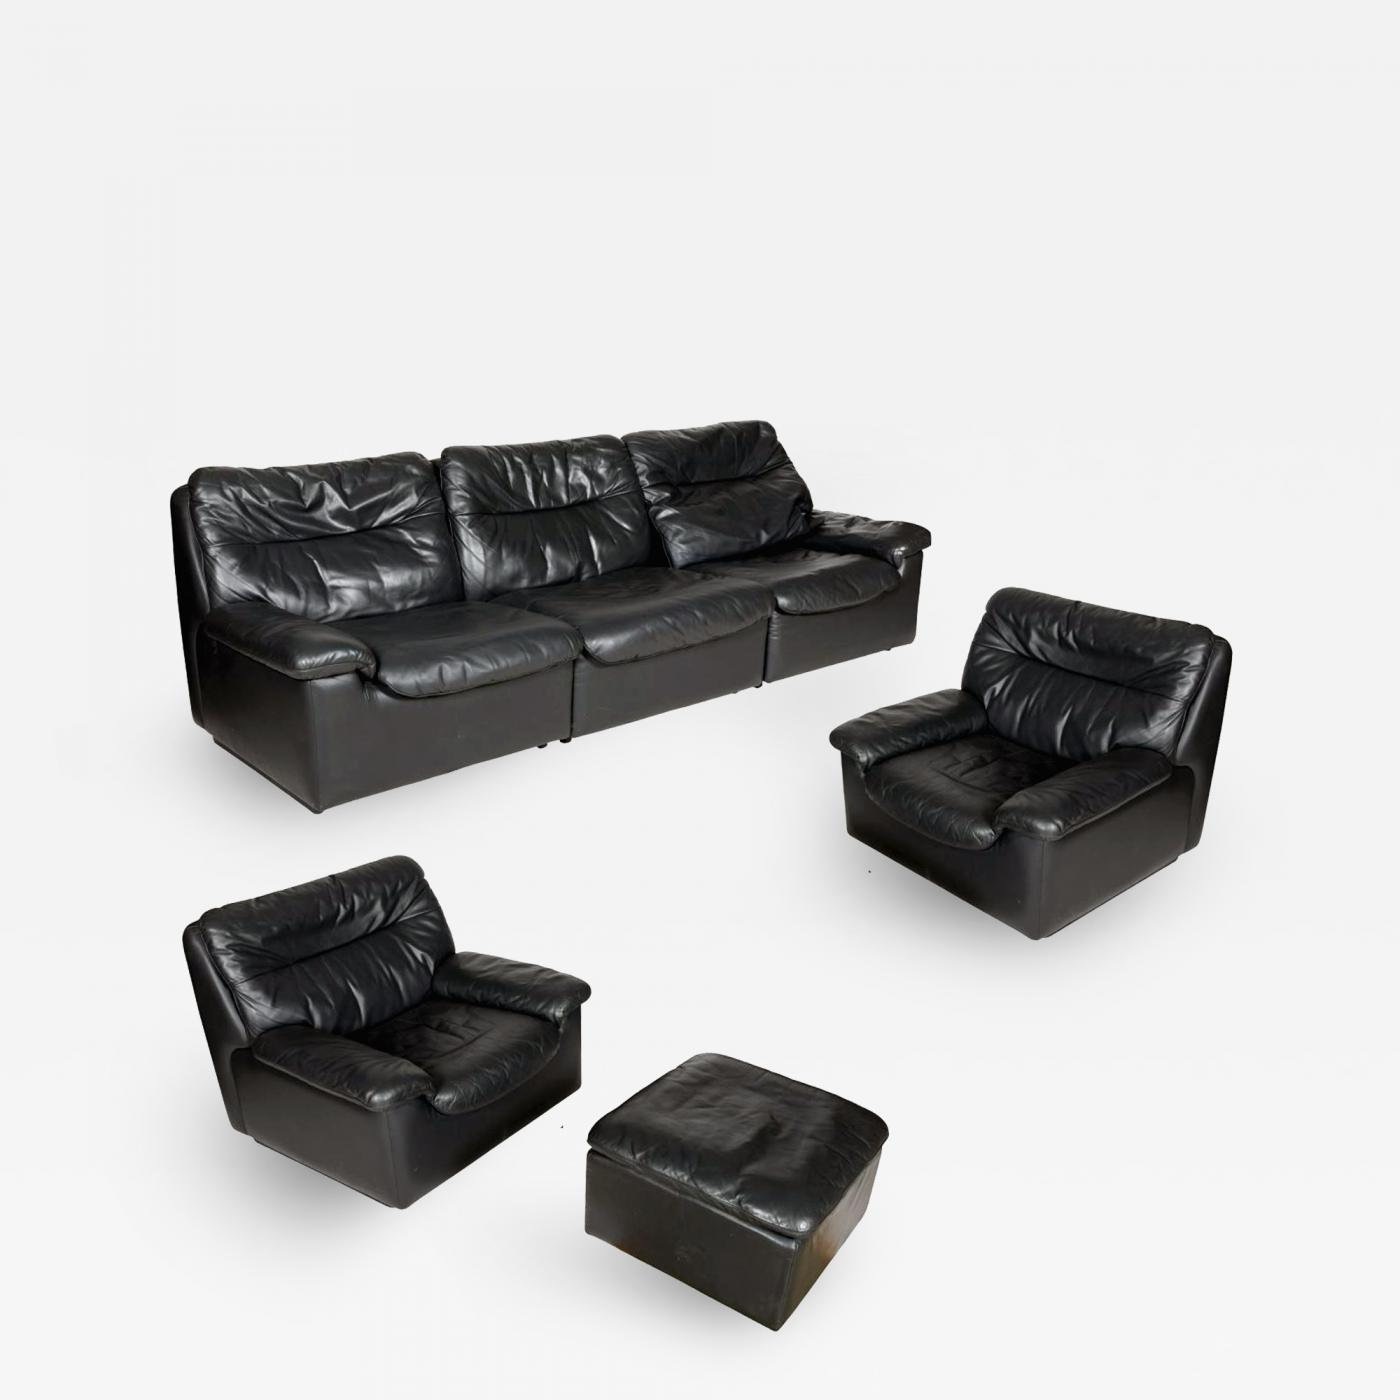 de Sede - A Set of Vintage Leather Sofa, Lounge Chair and Ottoman by De  Sede Switzerland